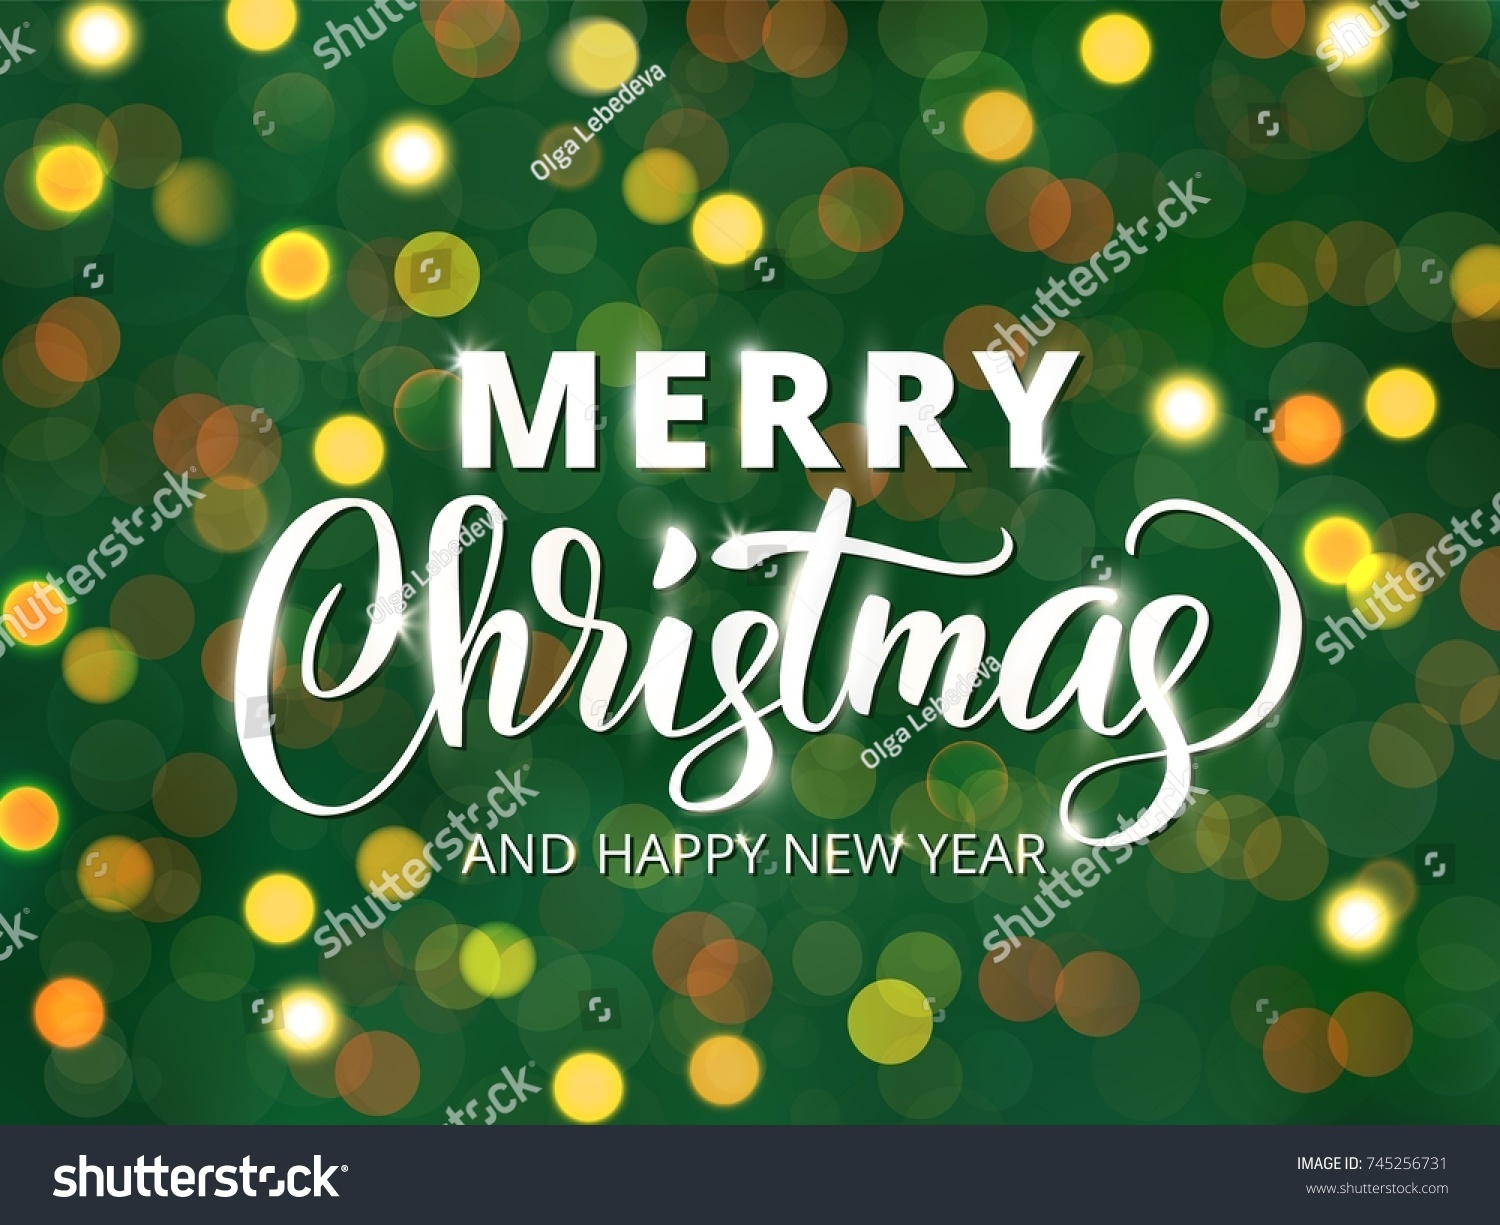 Merry christmas happy new year text stock vector 745256731 merry christmas and happy new year text hand drawn letters blurred background with glowing kristyandbryce Images